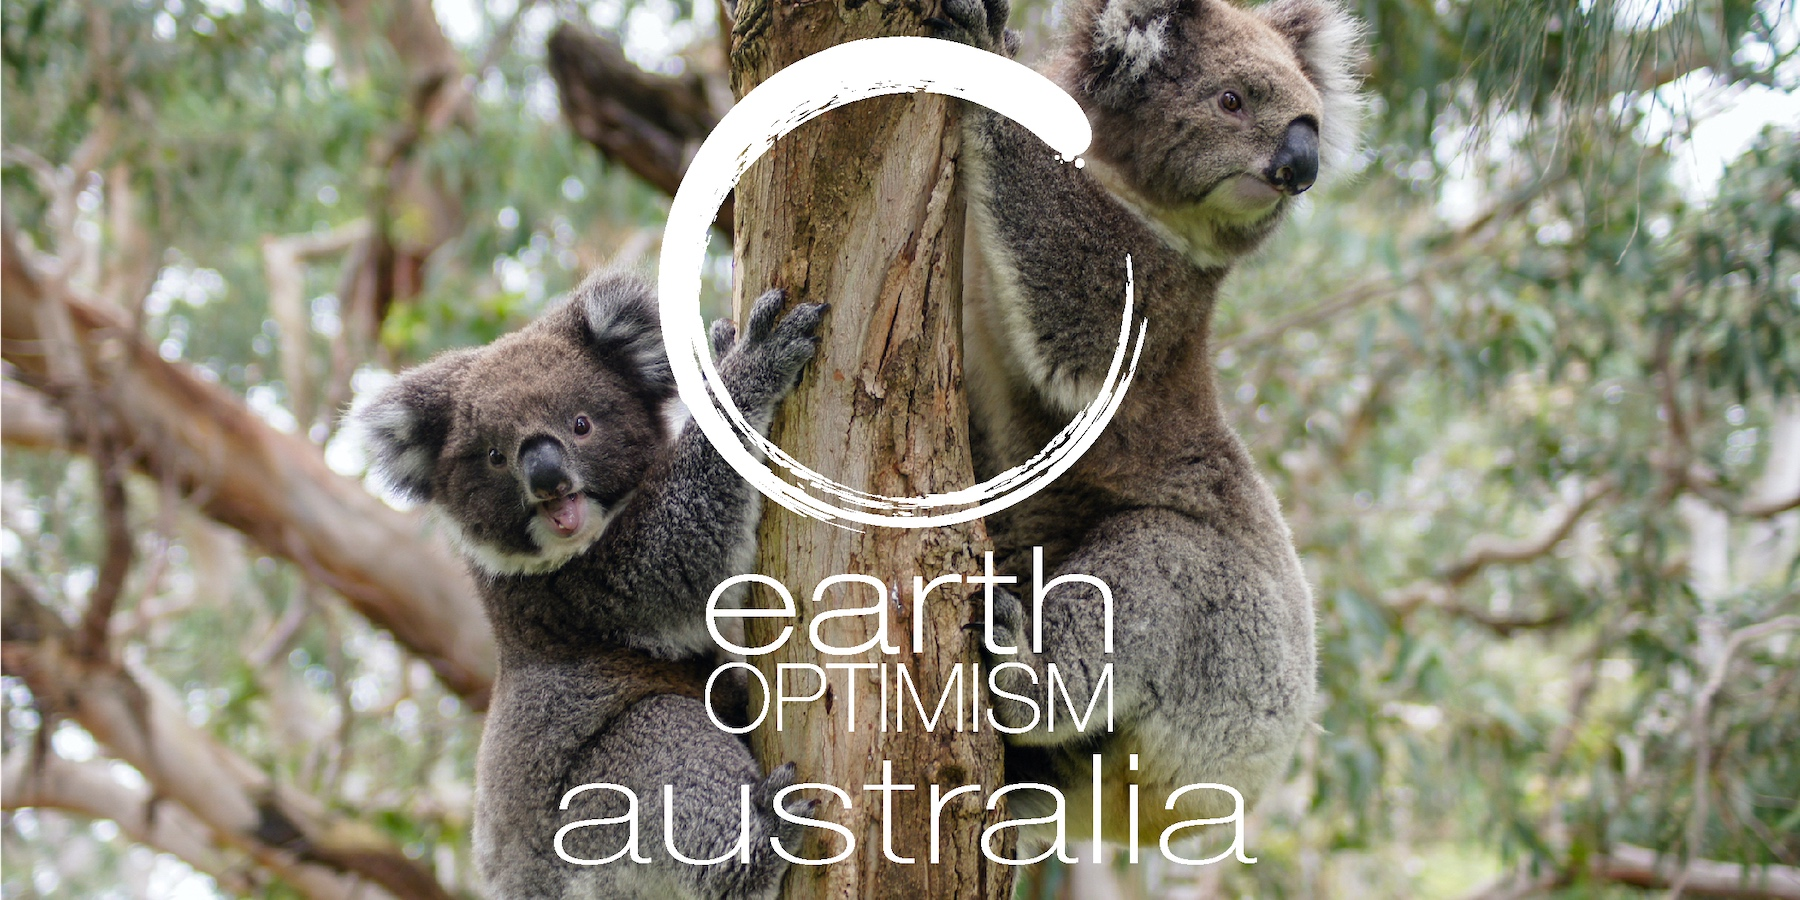 A special message from the Earth Optimism Alliance